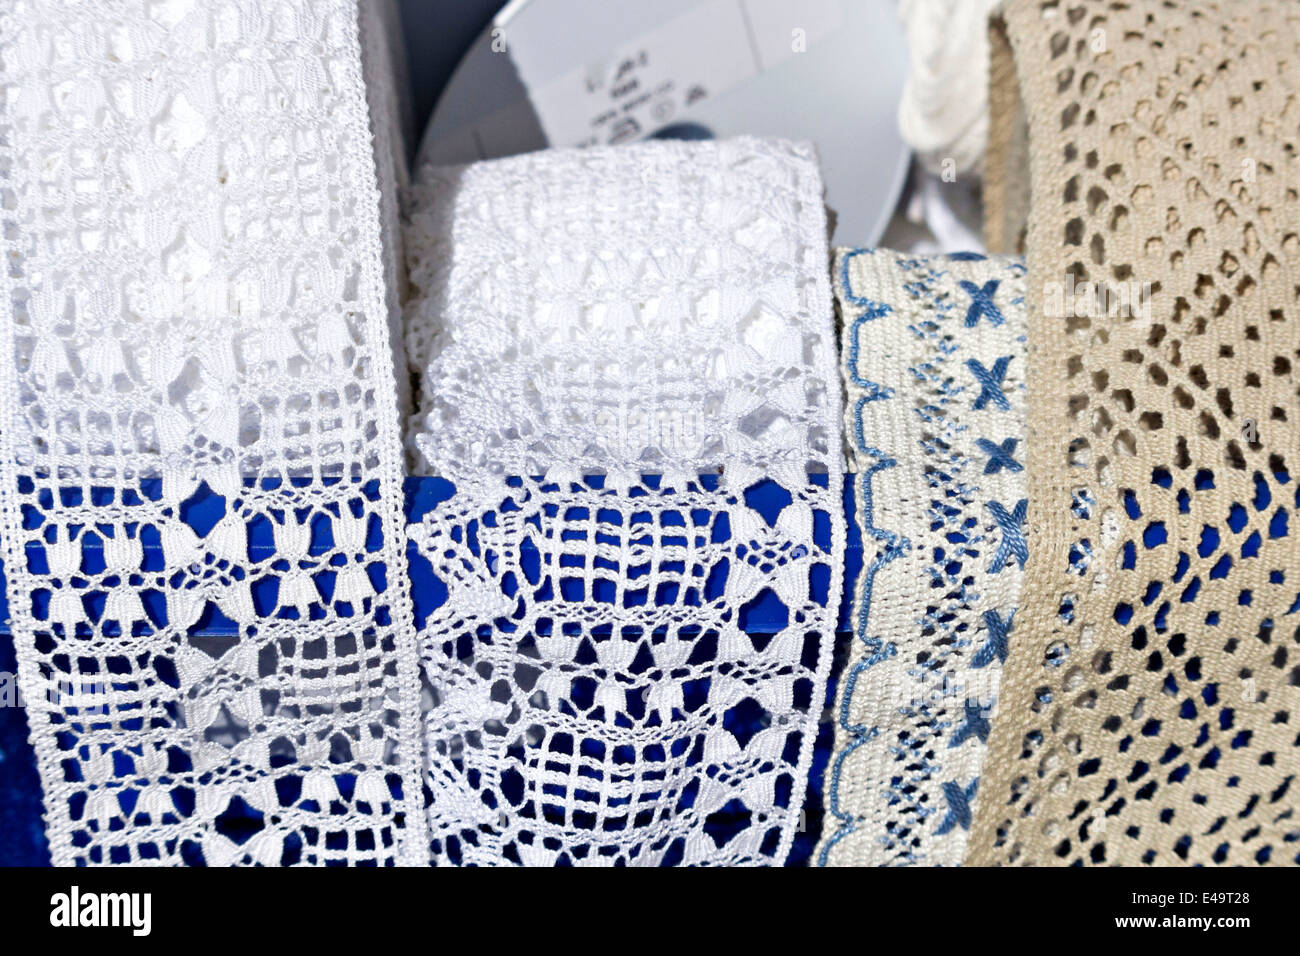 Lace Material Stockfotos & Lace Material Bilder - Alamy